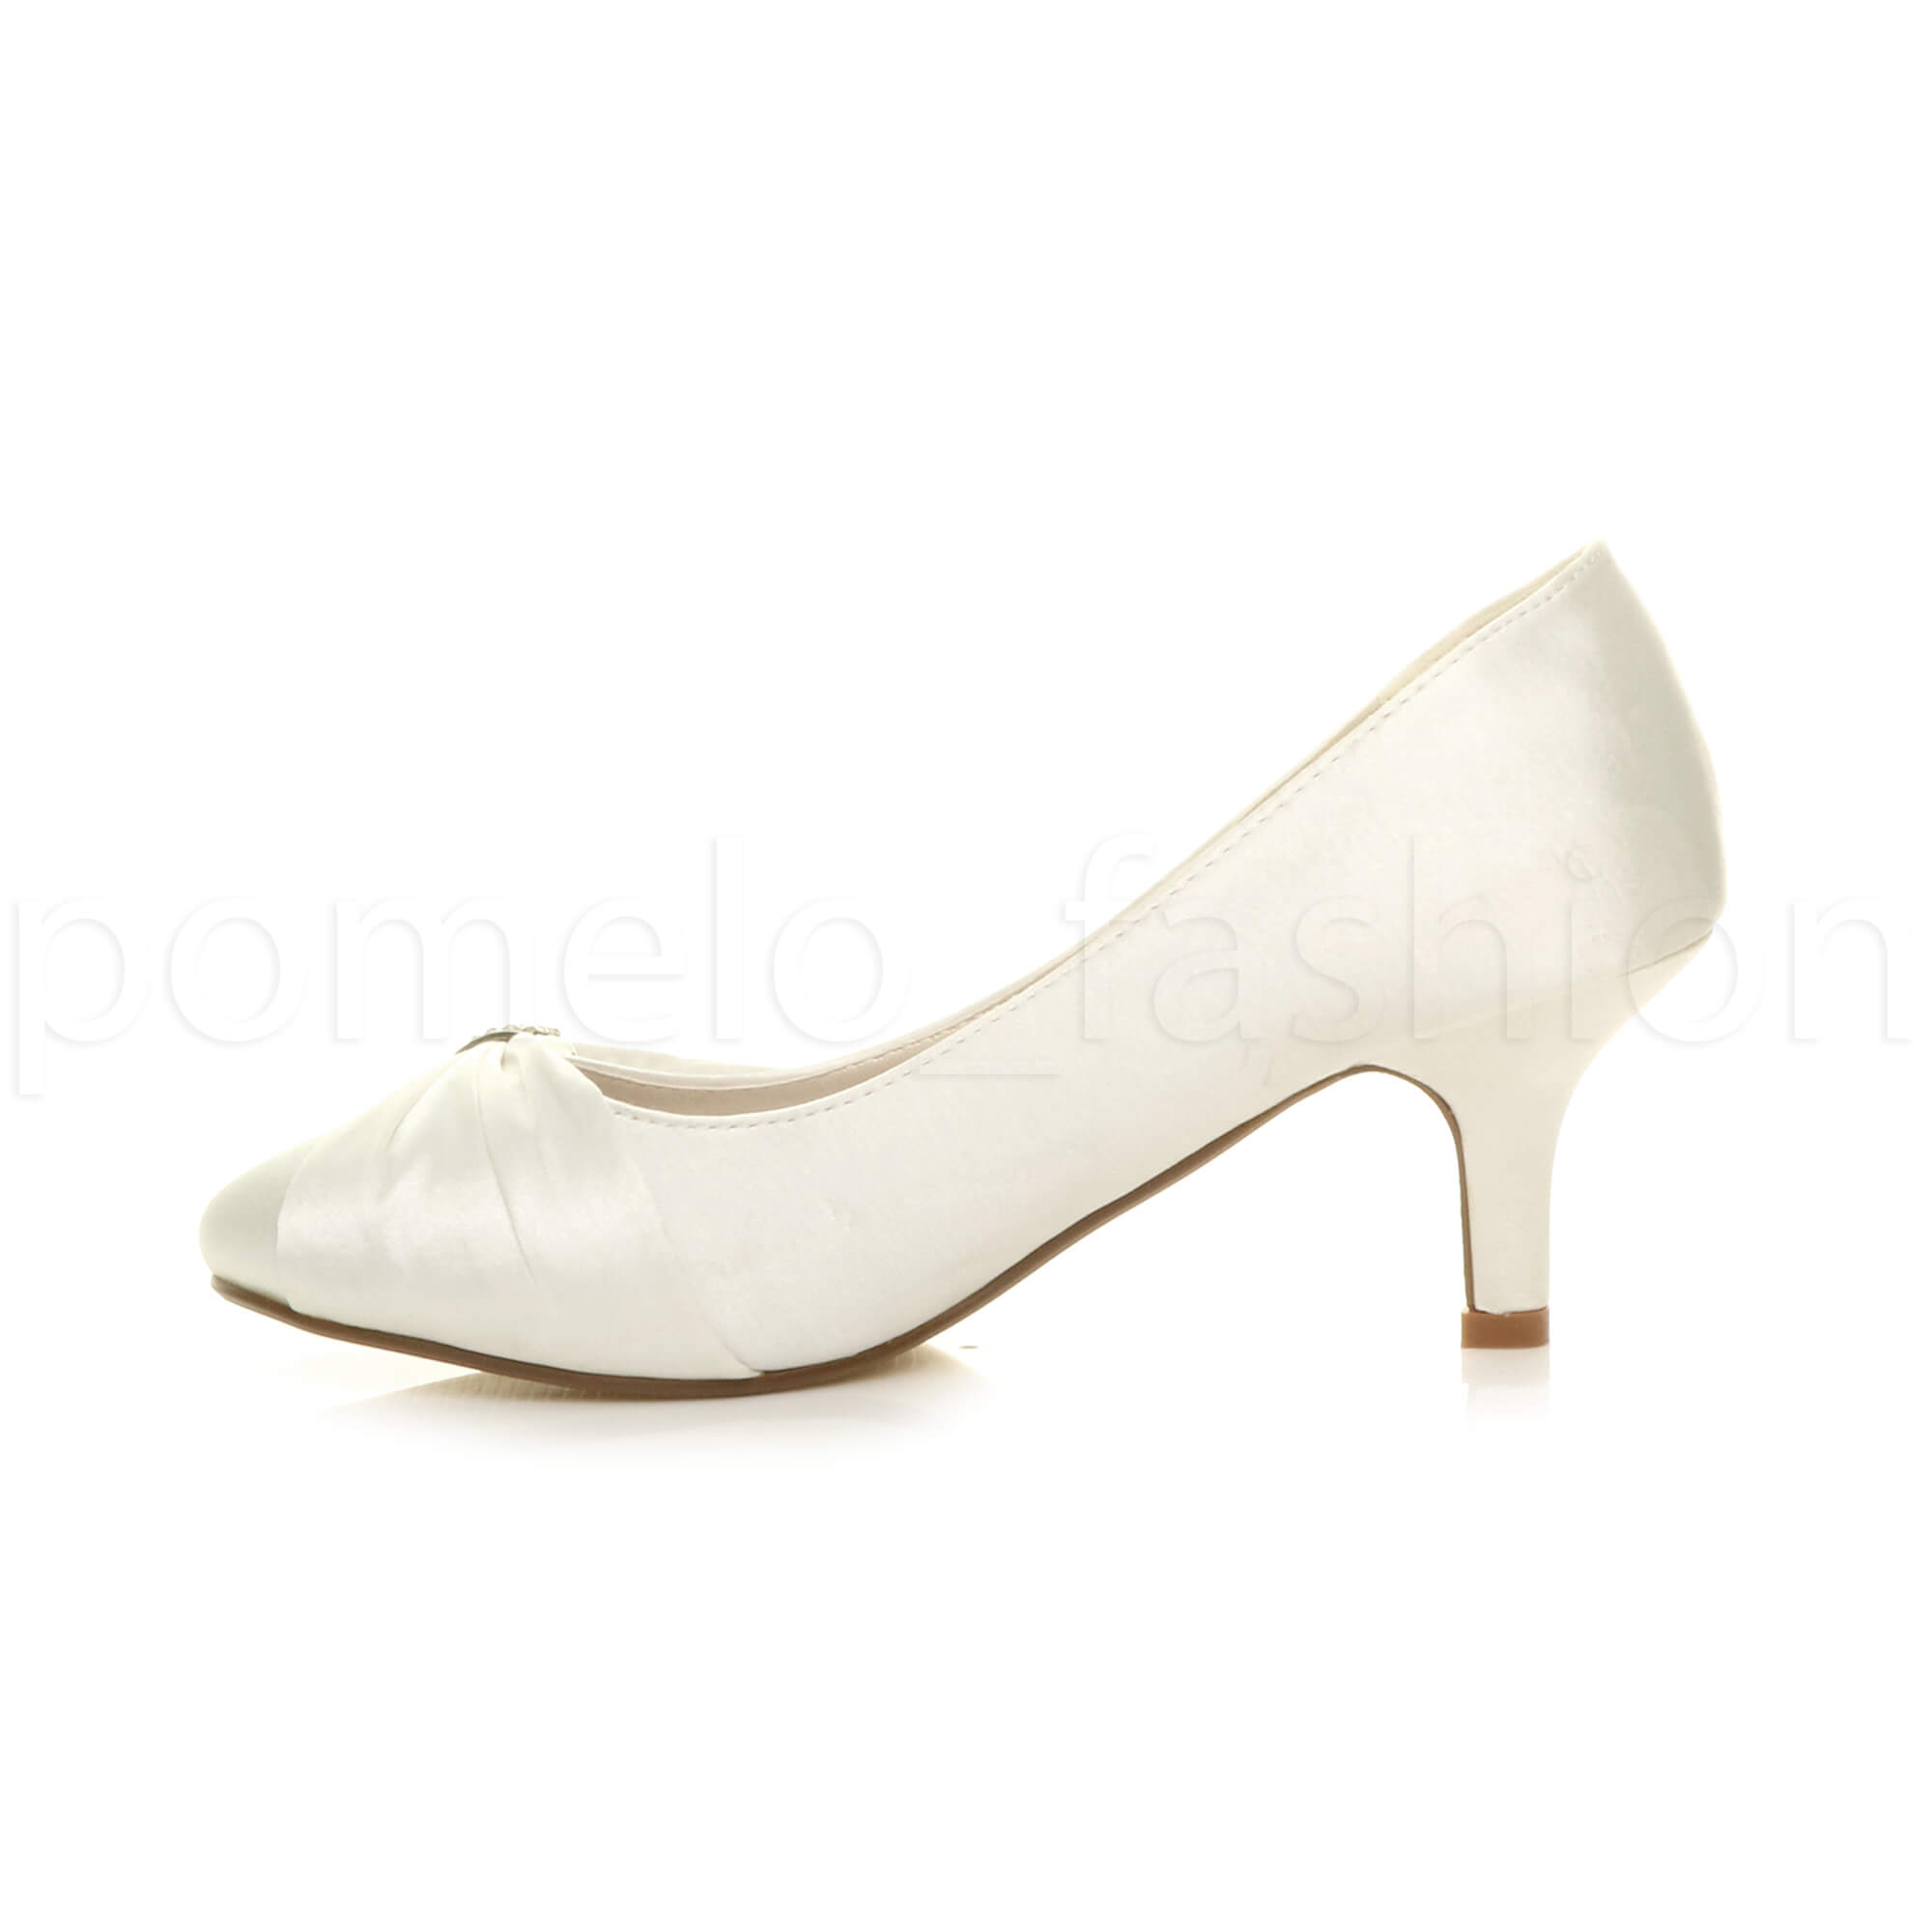 wide width wedding shoes low heel womens wedding bridal prom shoes low heel 1410